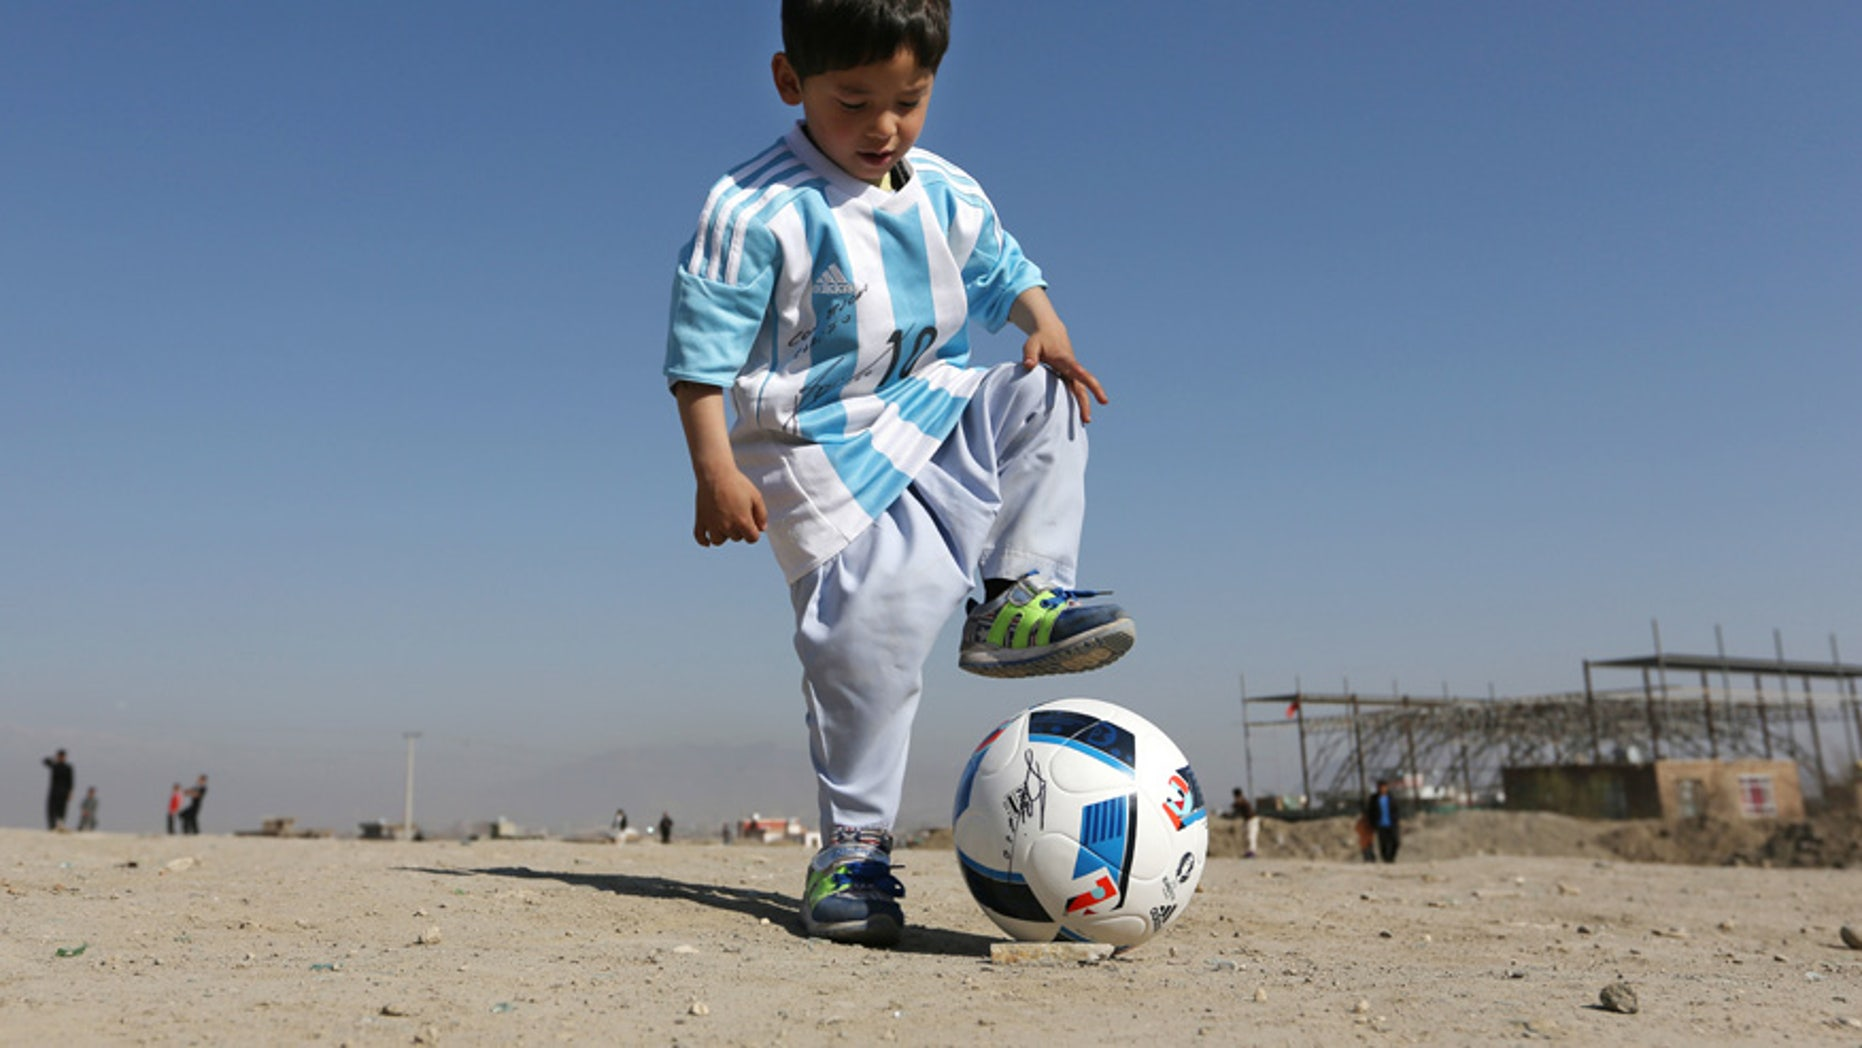 Feb. 26, 2016: Murtaza Ahmadi, a five-year-old Afghan Lionel Messi fan plays with a soccer ball during a photo opportunity as he wears a shirt signed by Messi, in Kabul, Afghanistan.